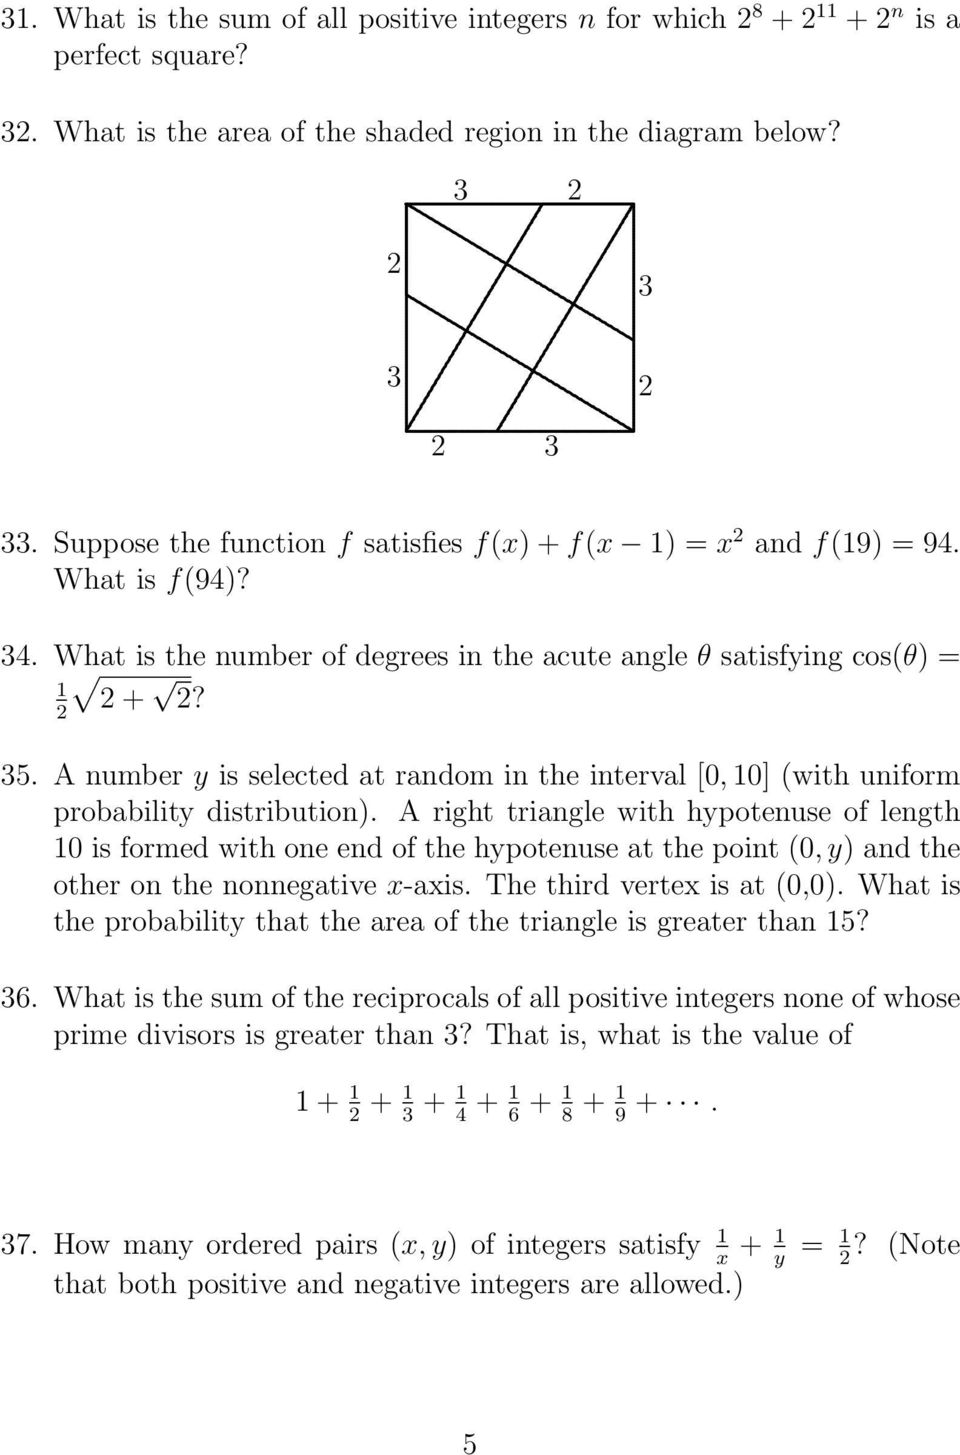 35 A number y is selected at random in the interval [0, 0] (with uniform probability distribution) A right triangle with hypotenuse of length 0 is formed with one end of the hypotenuse at the point